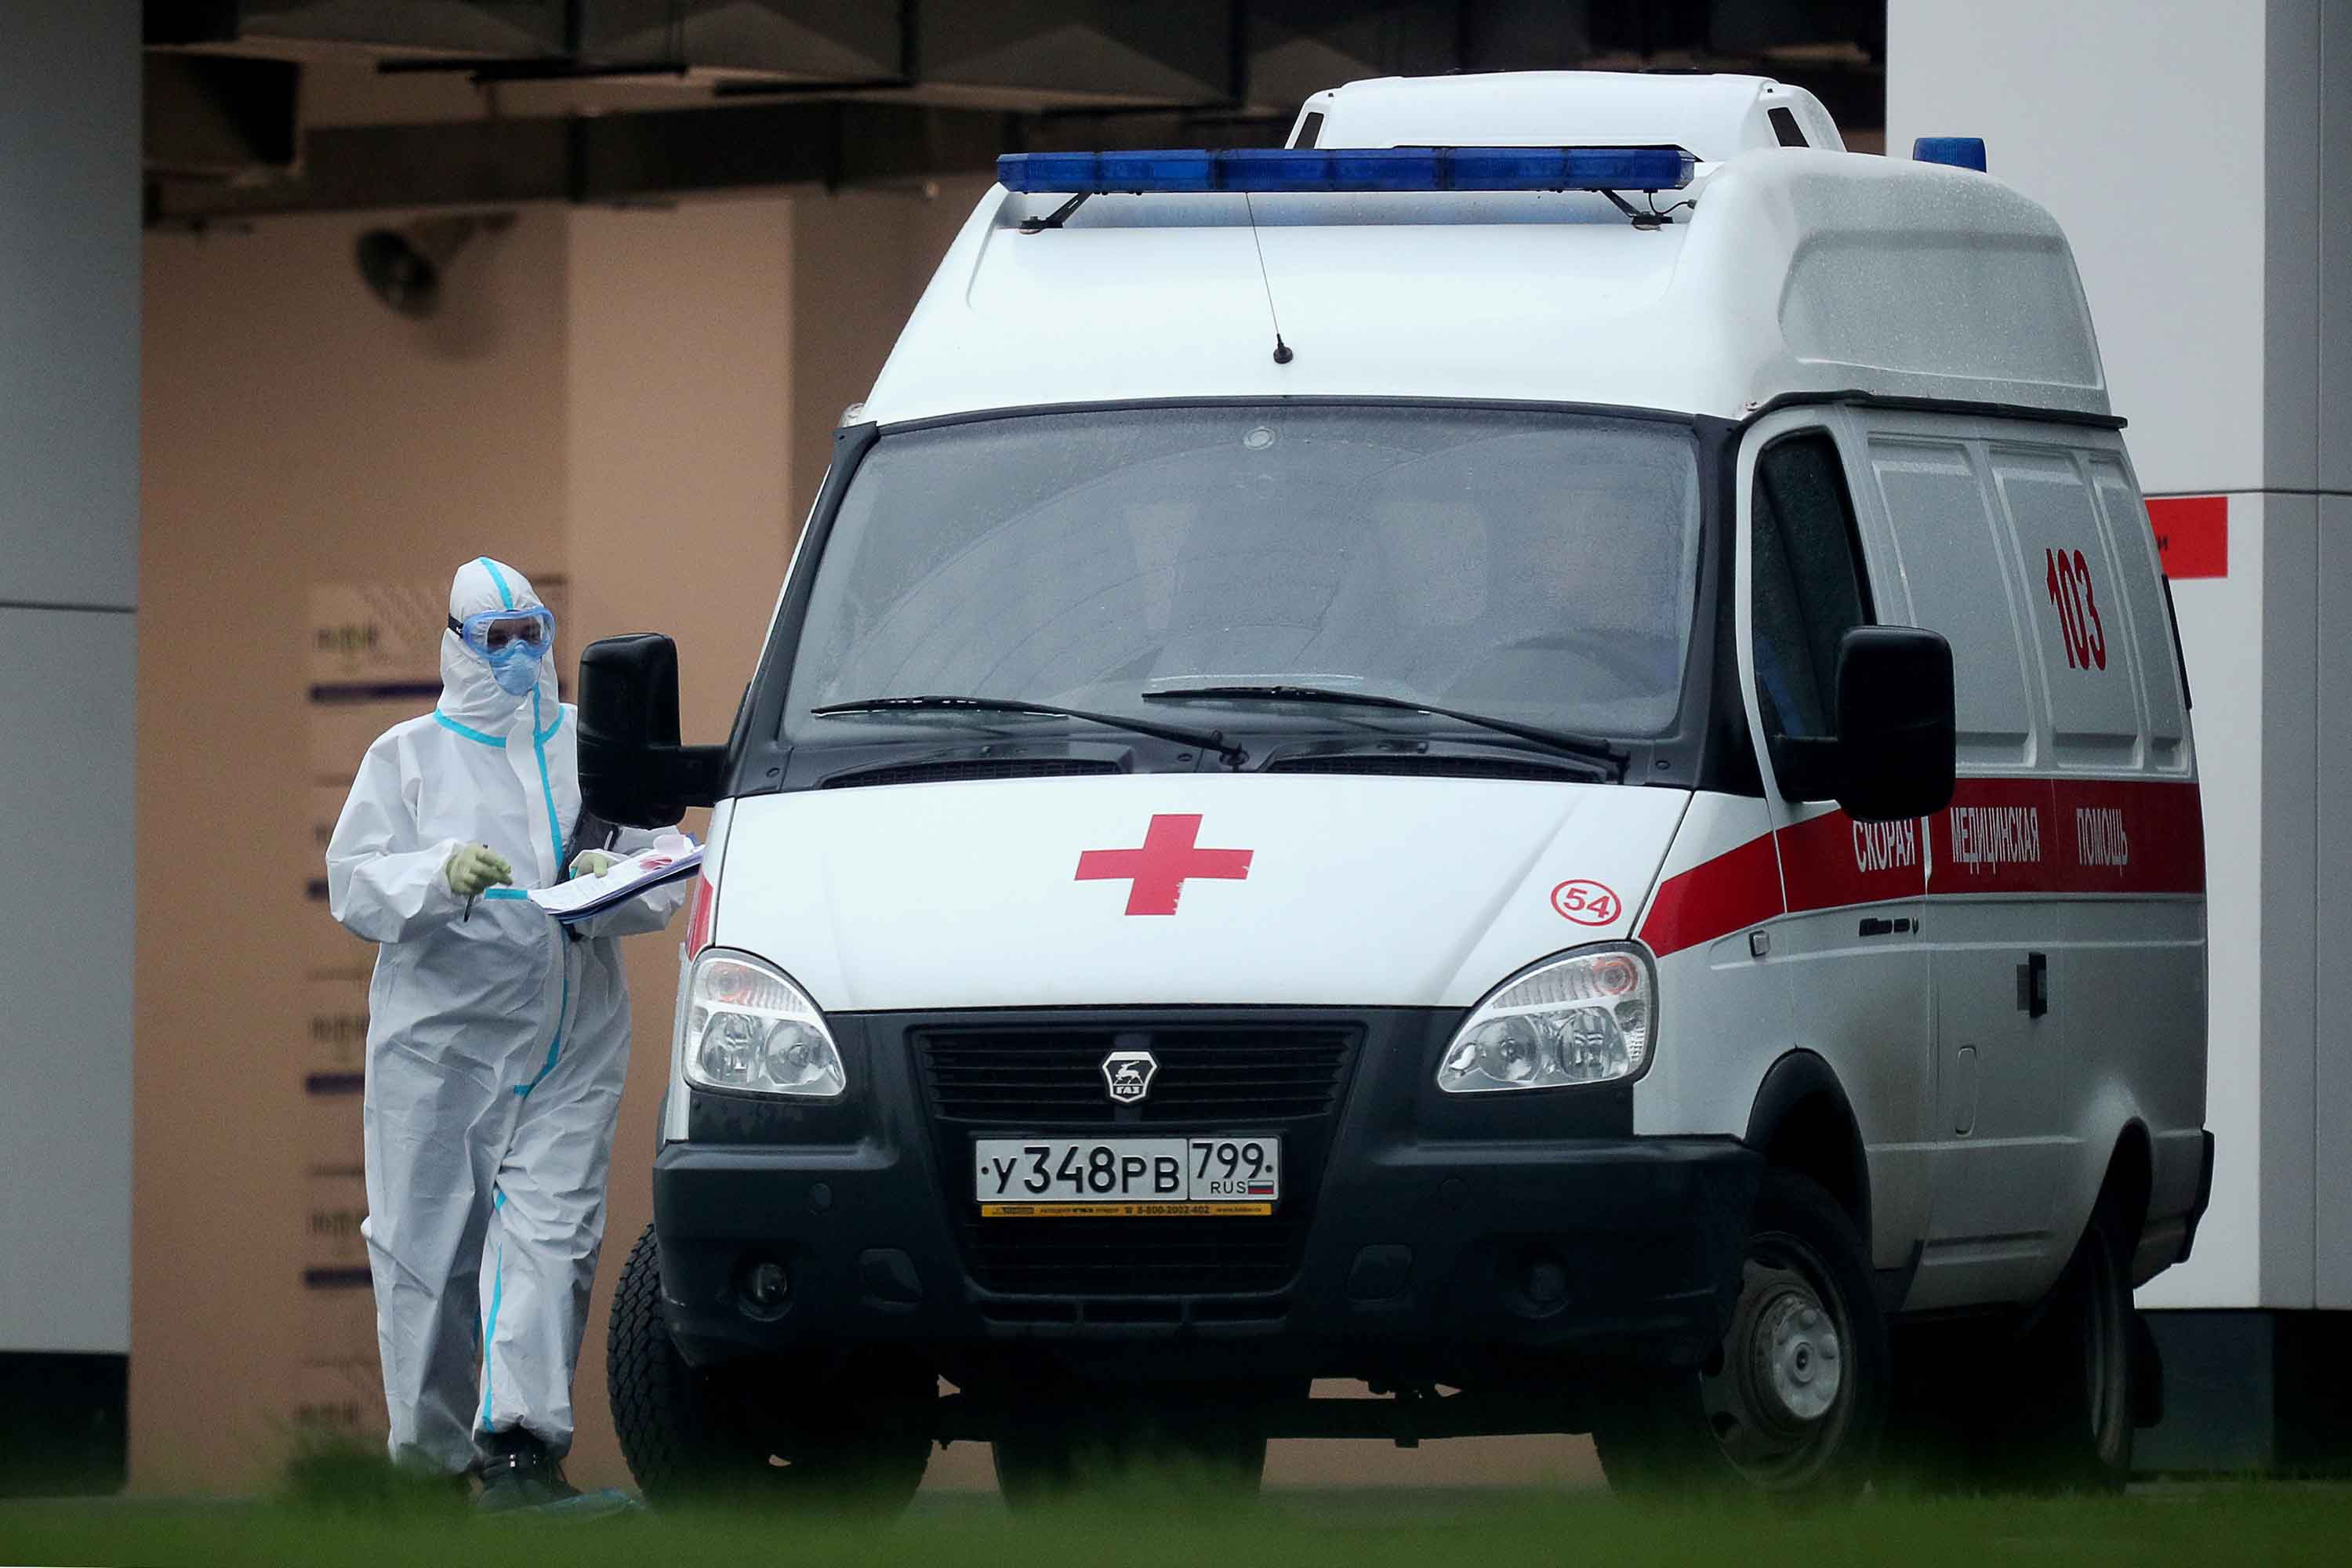 An emergency paramedic is seen by an ambulance at a Moscow medical center for patients suspected to be infected with Covid-19, on May 14.